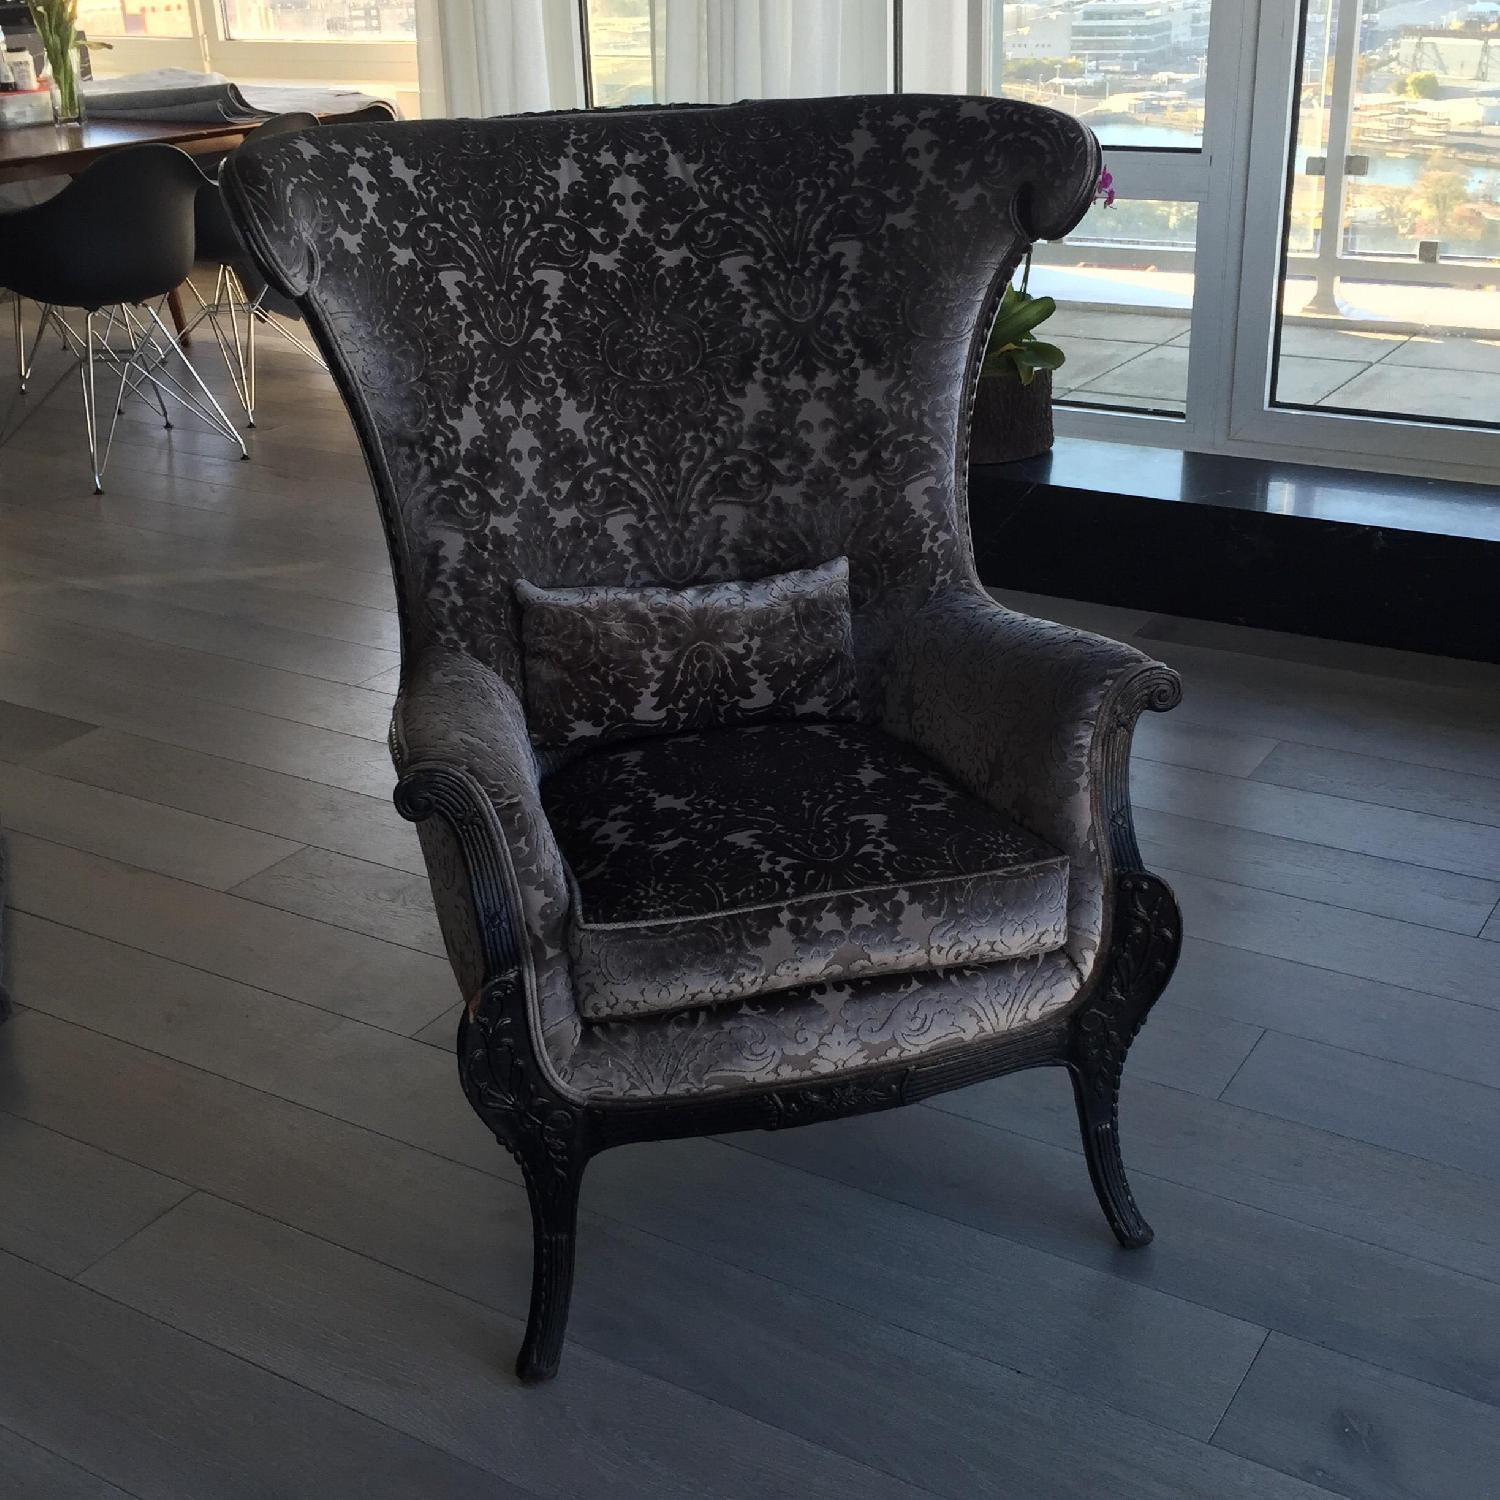 Antique High-Backed Reupholstered Gray Fabric Armchair - image-1